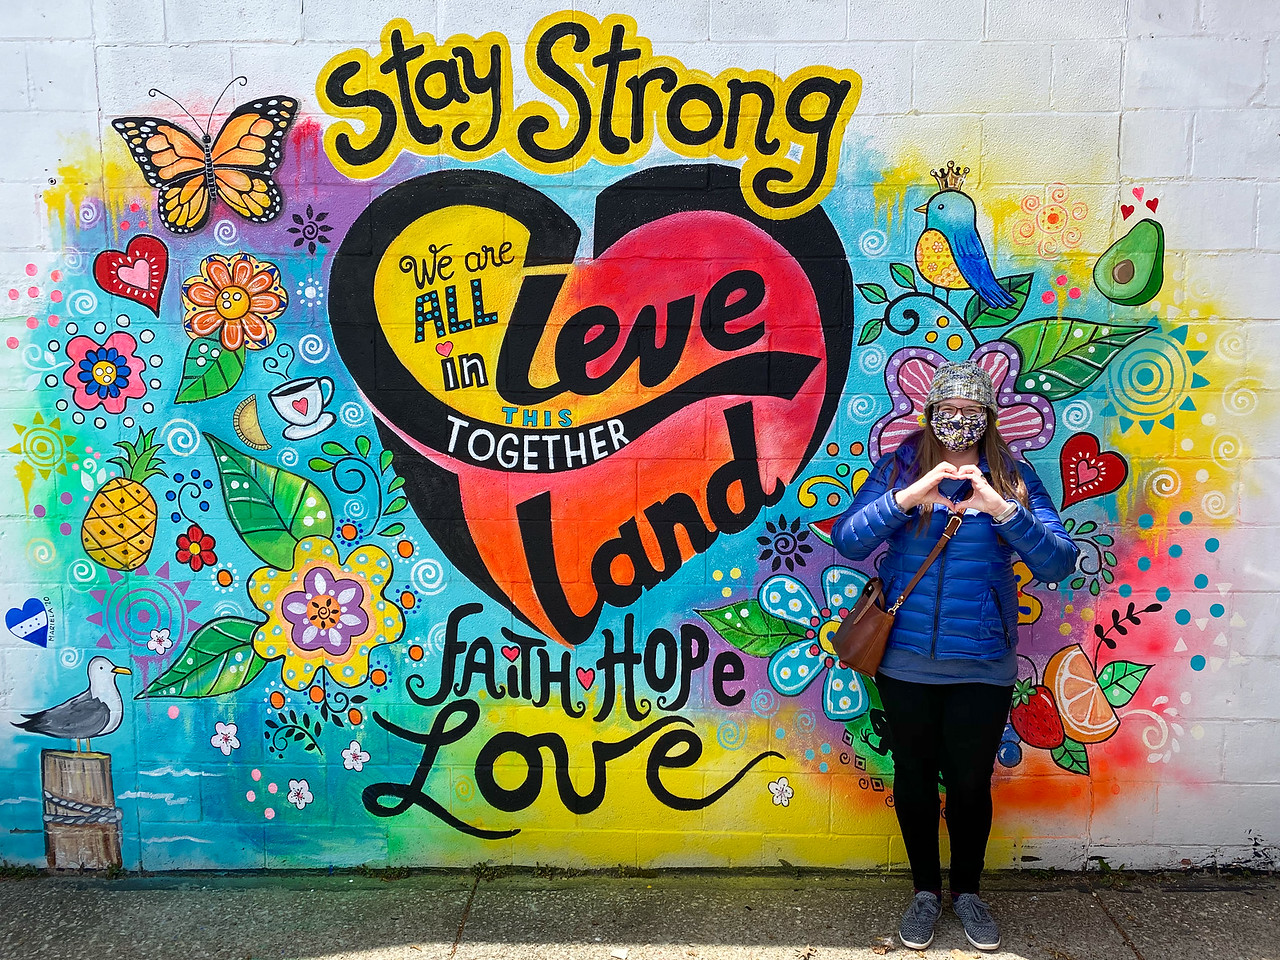 Stay Strong Cleveland mural